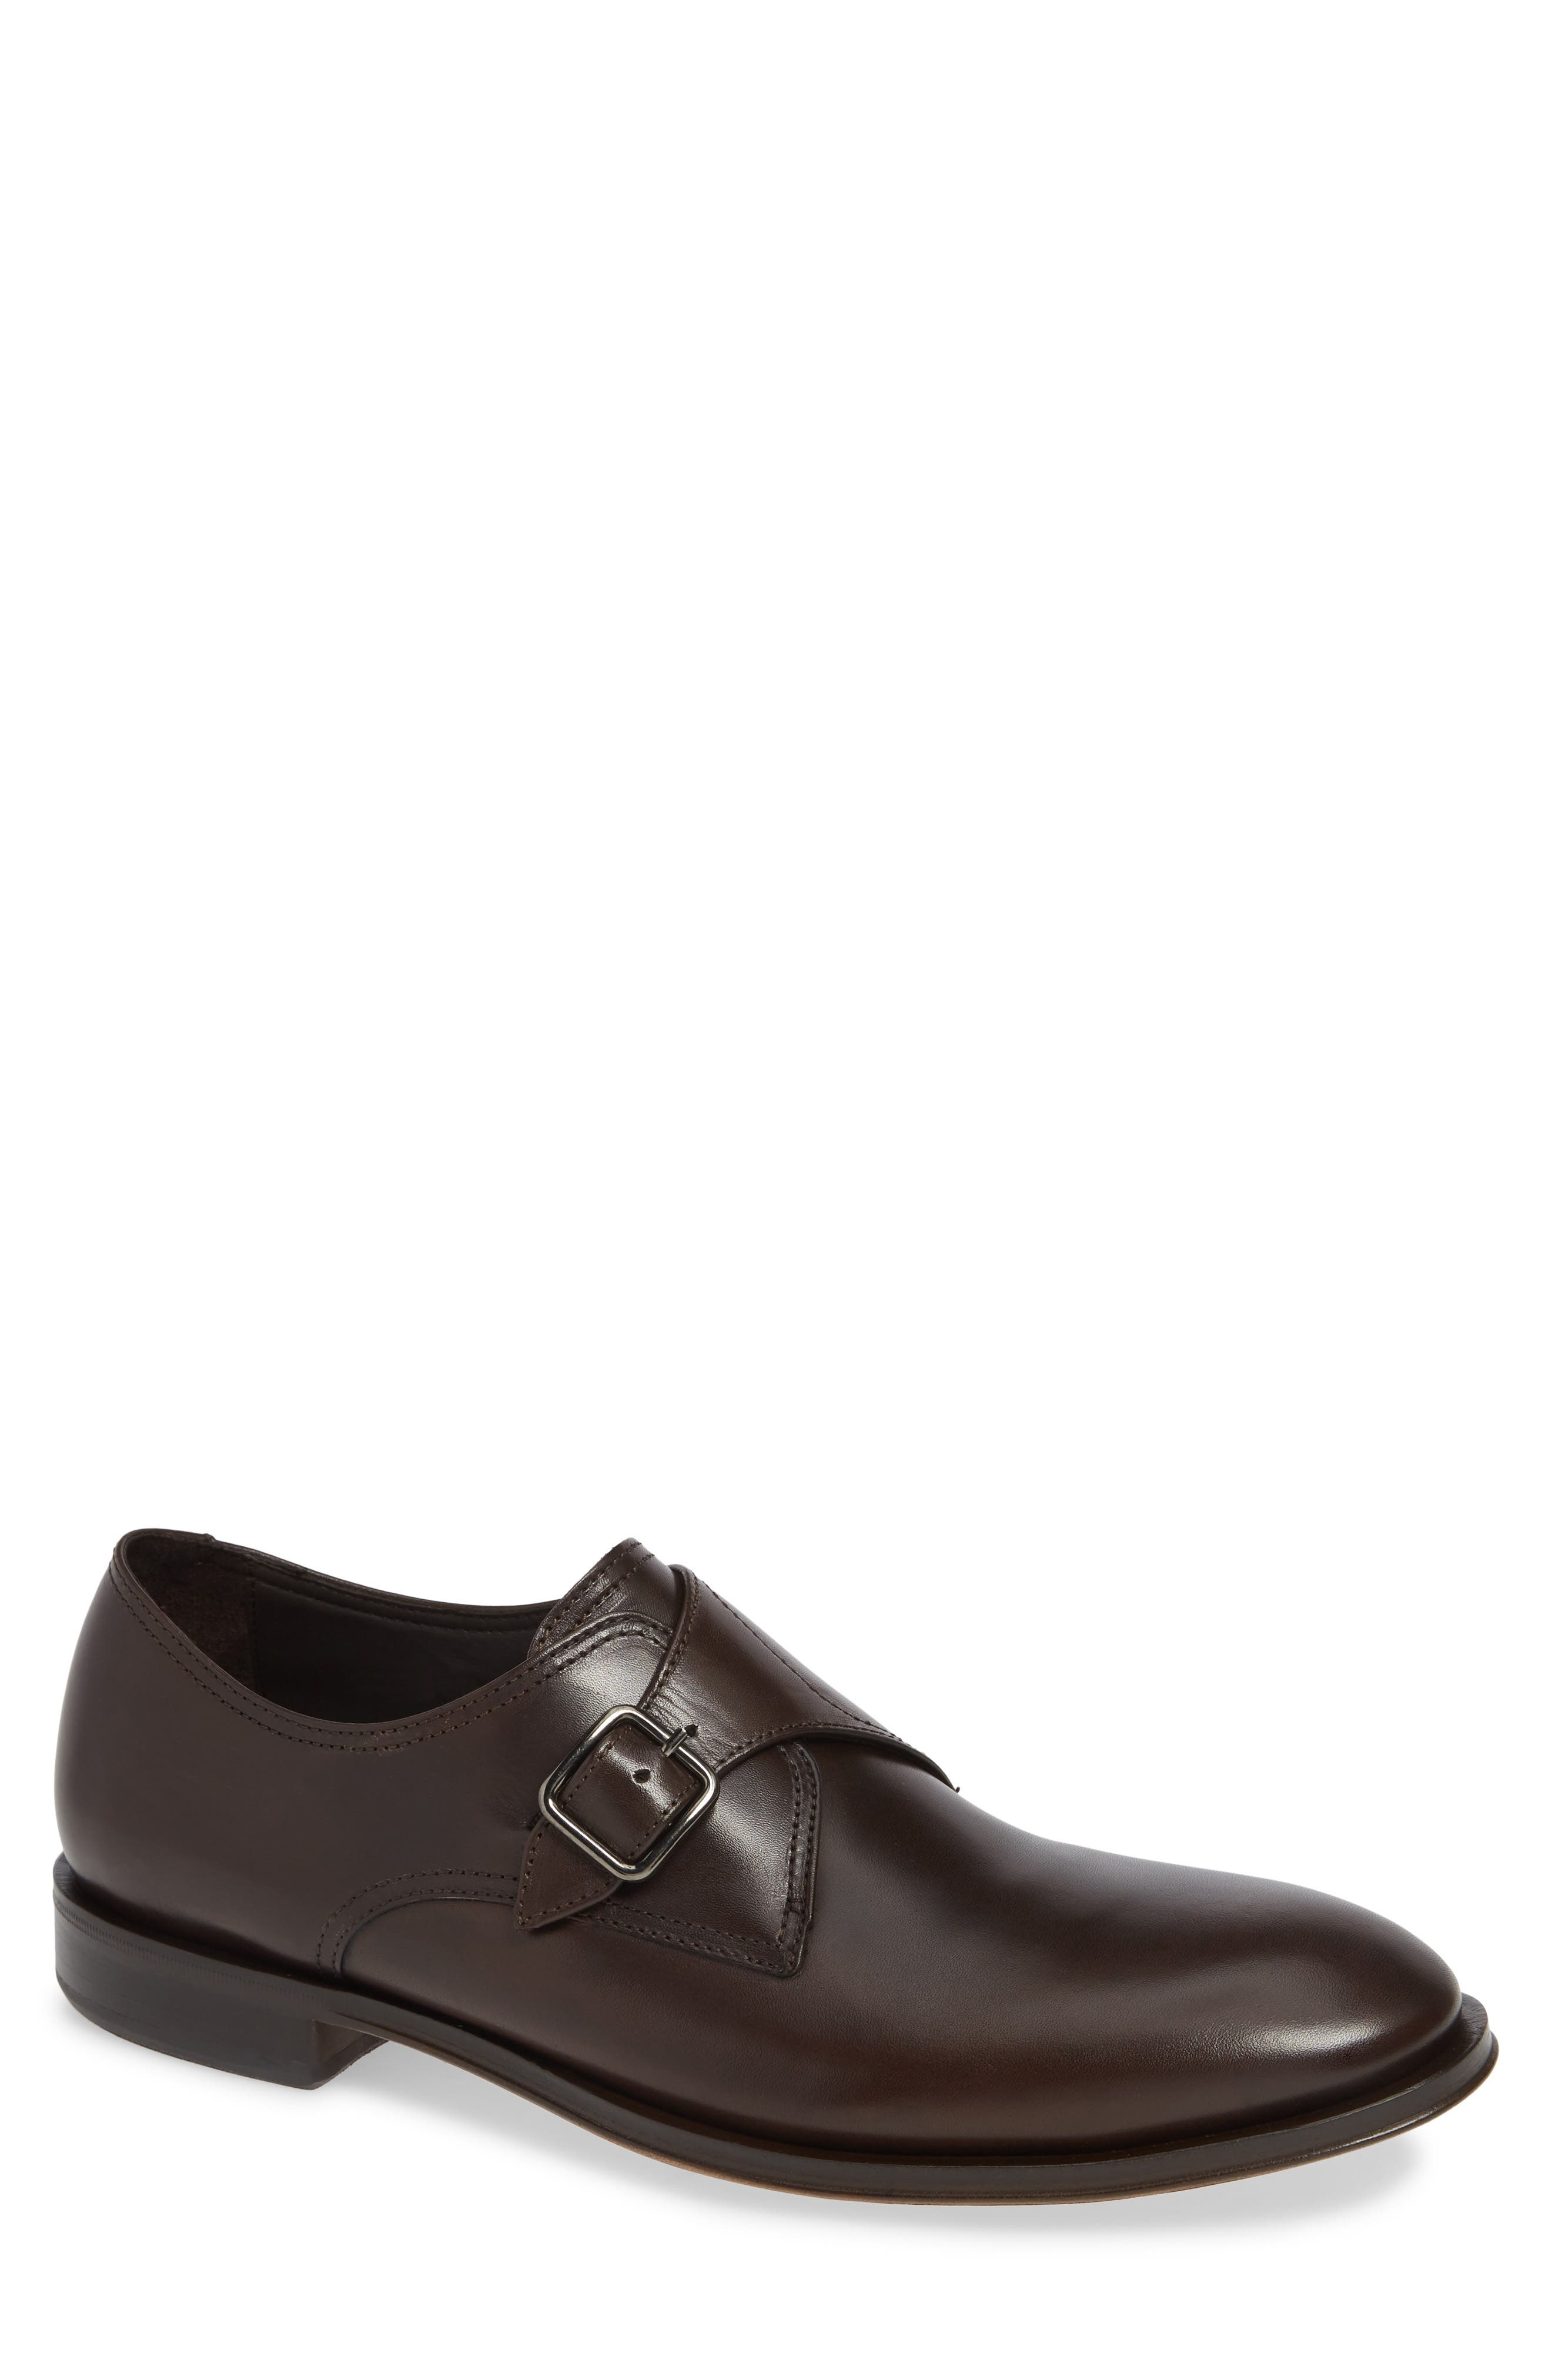 ALLEN EDMONDS, Umbria Monk Strap Shoe, Main thumbnail 1, color, DARK BROWN LEATHER